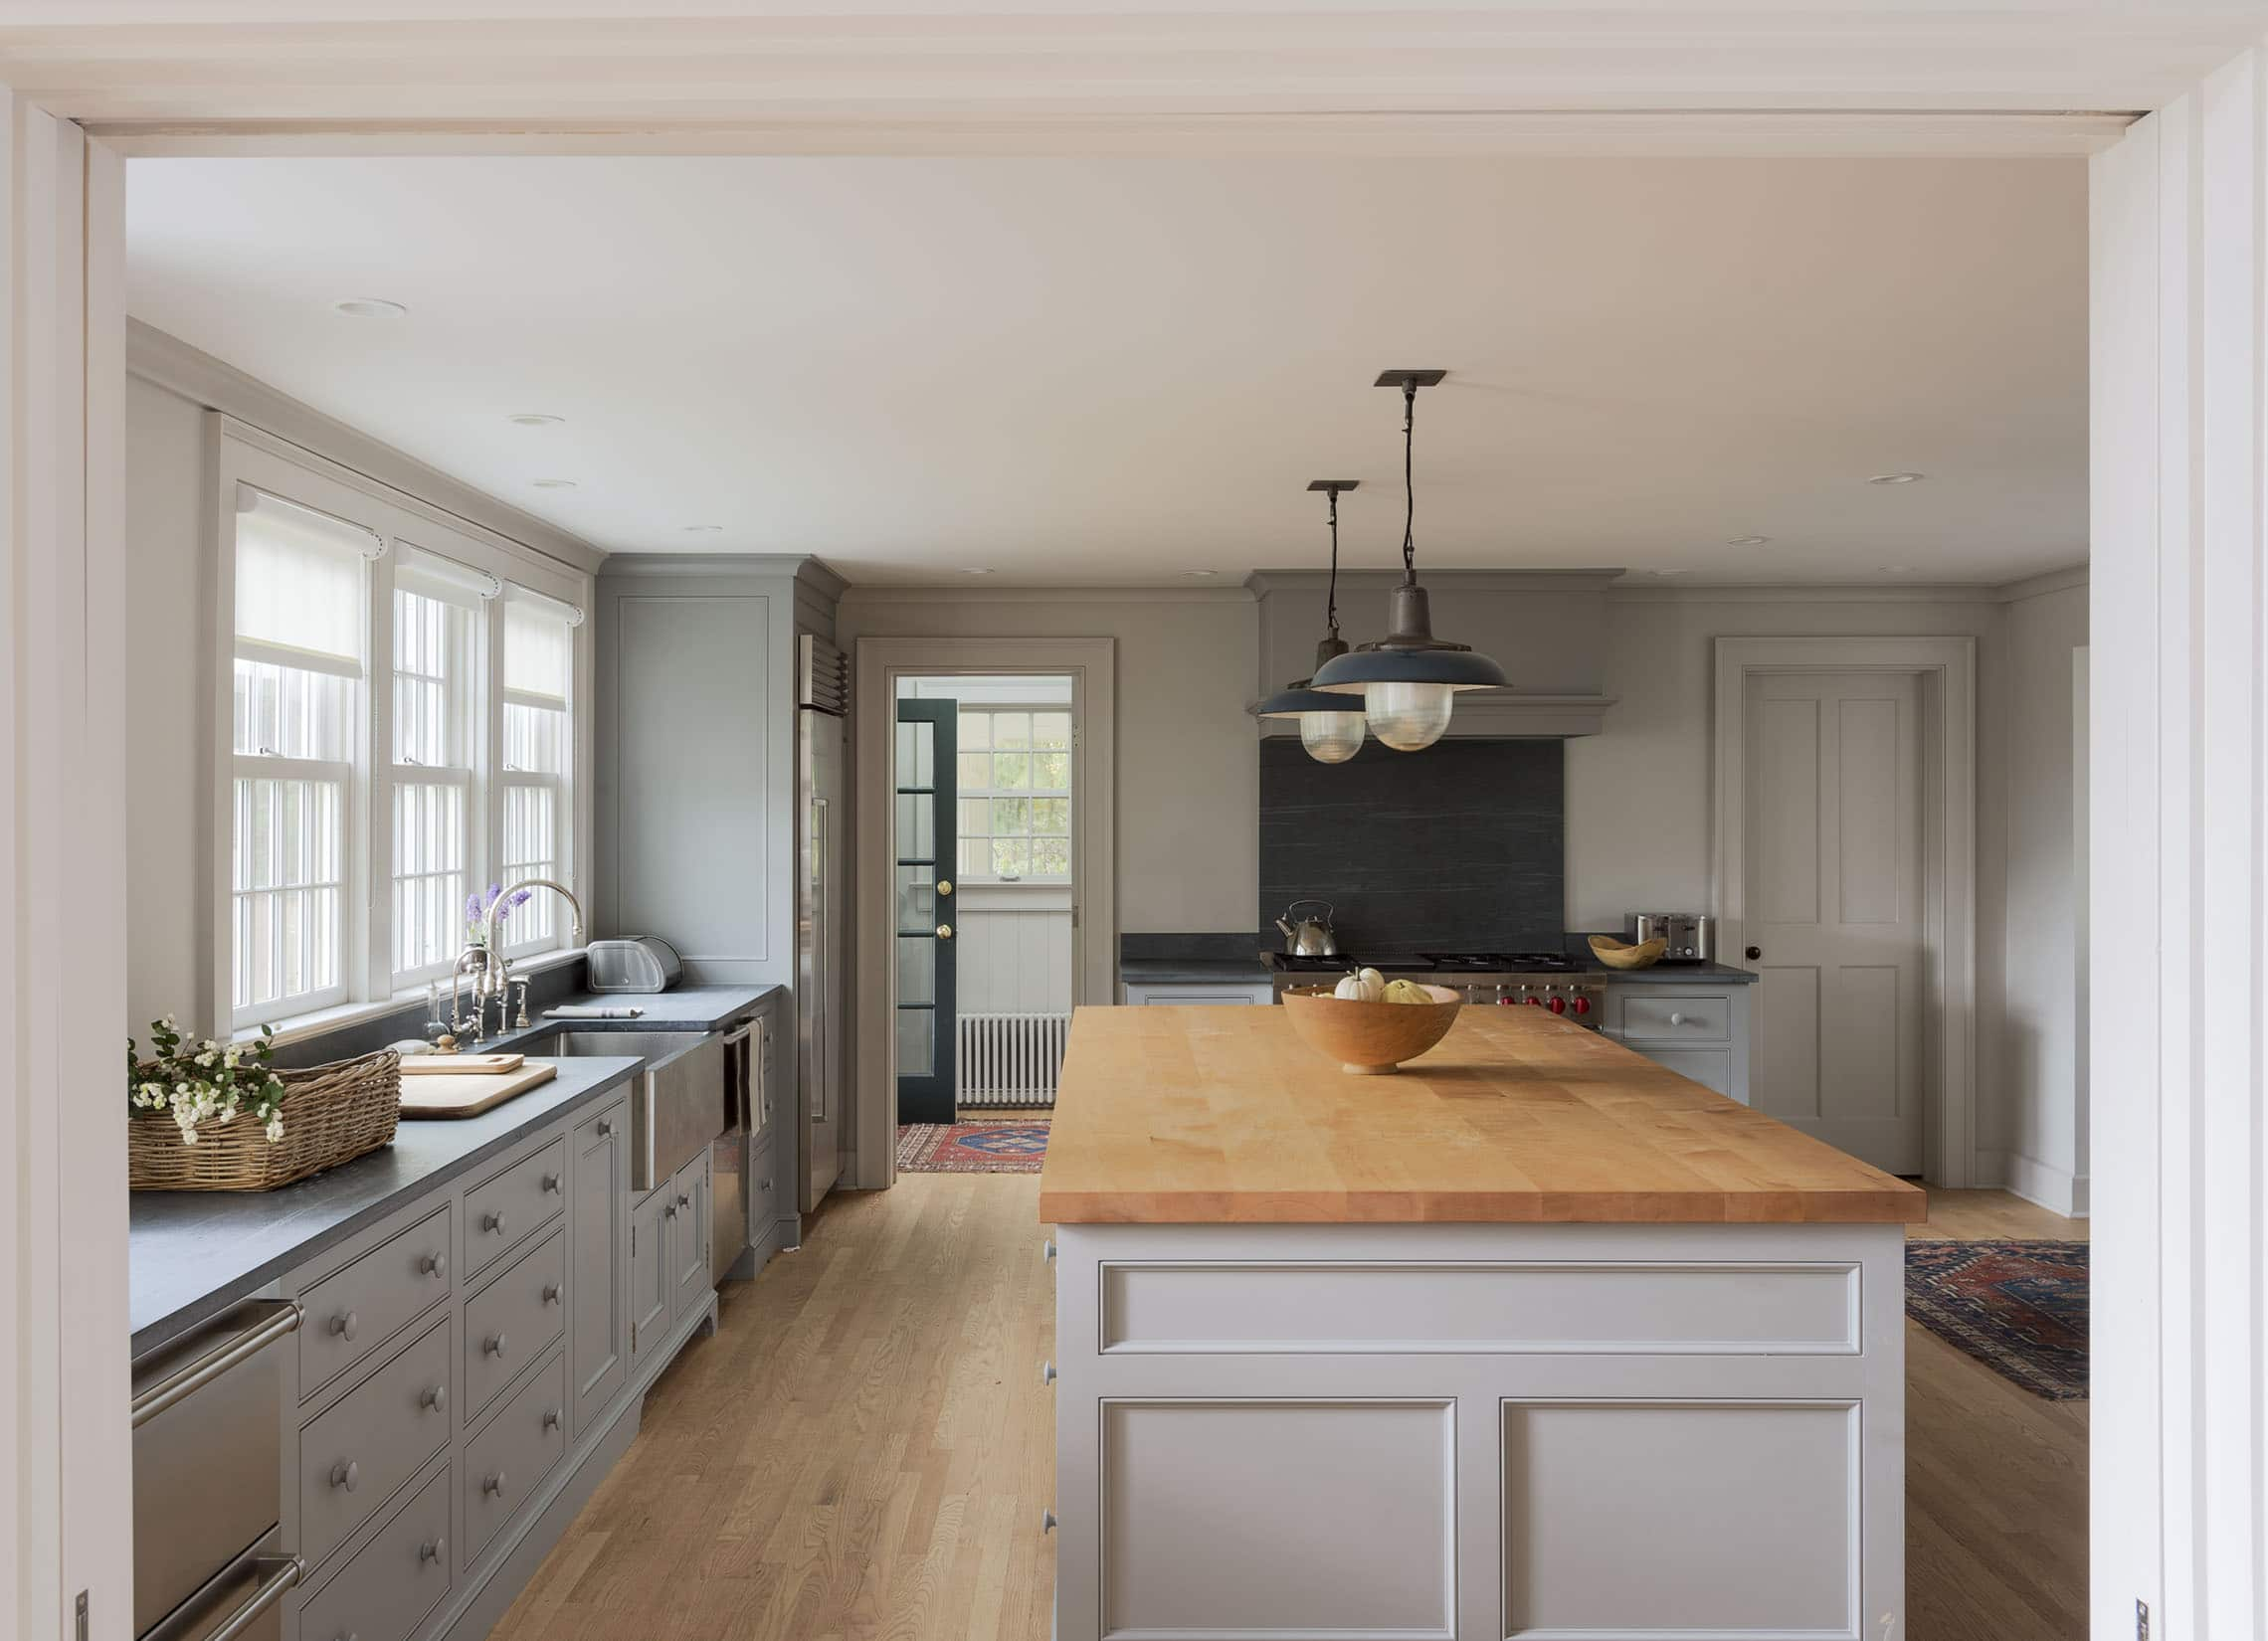 french-country-kitchen-cabinets-rafe-churchill